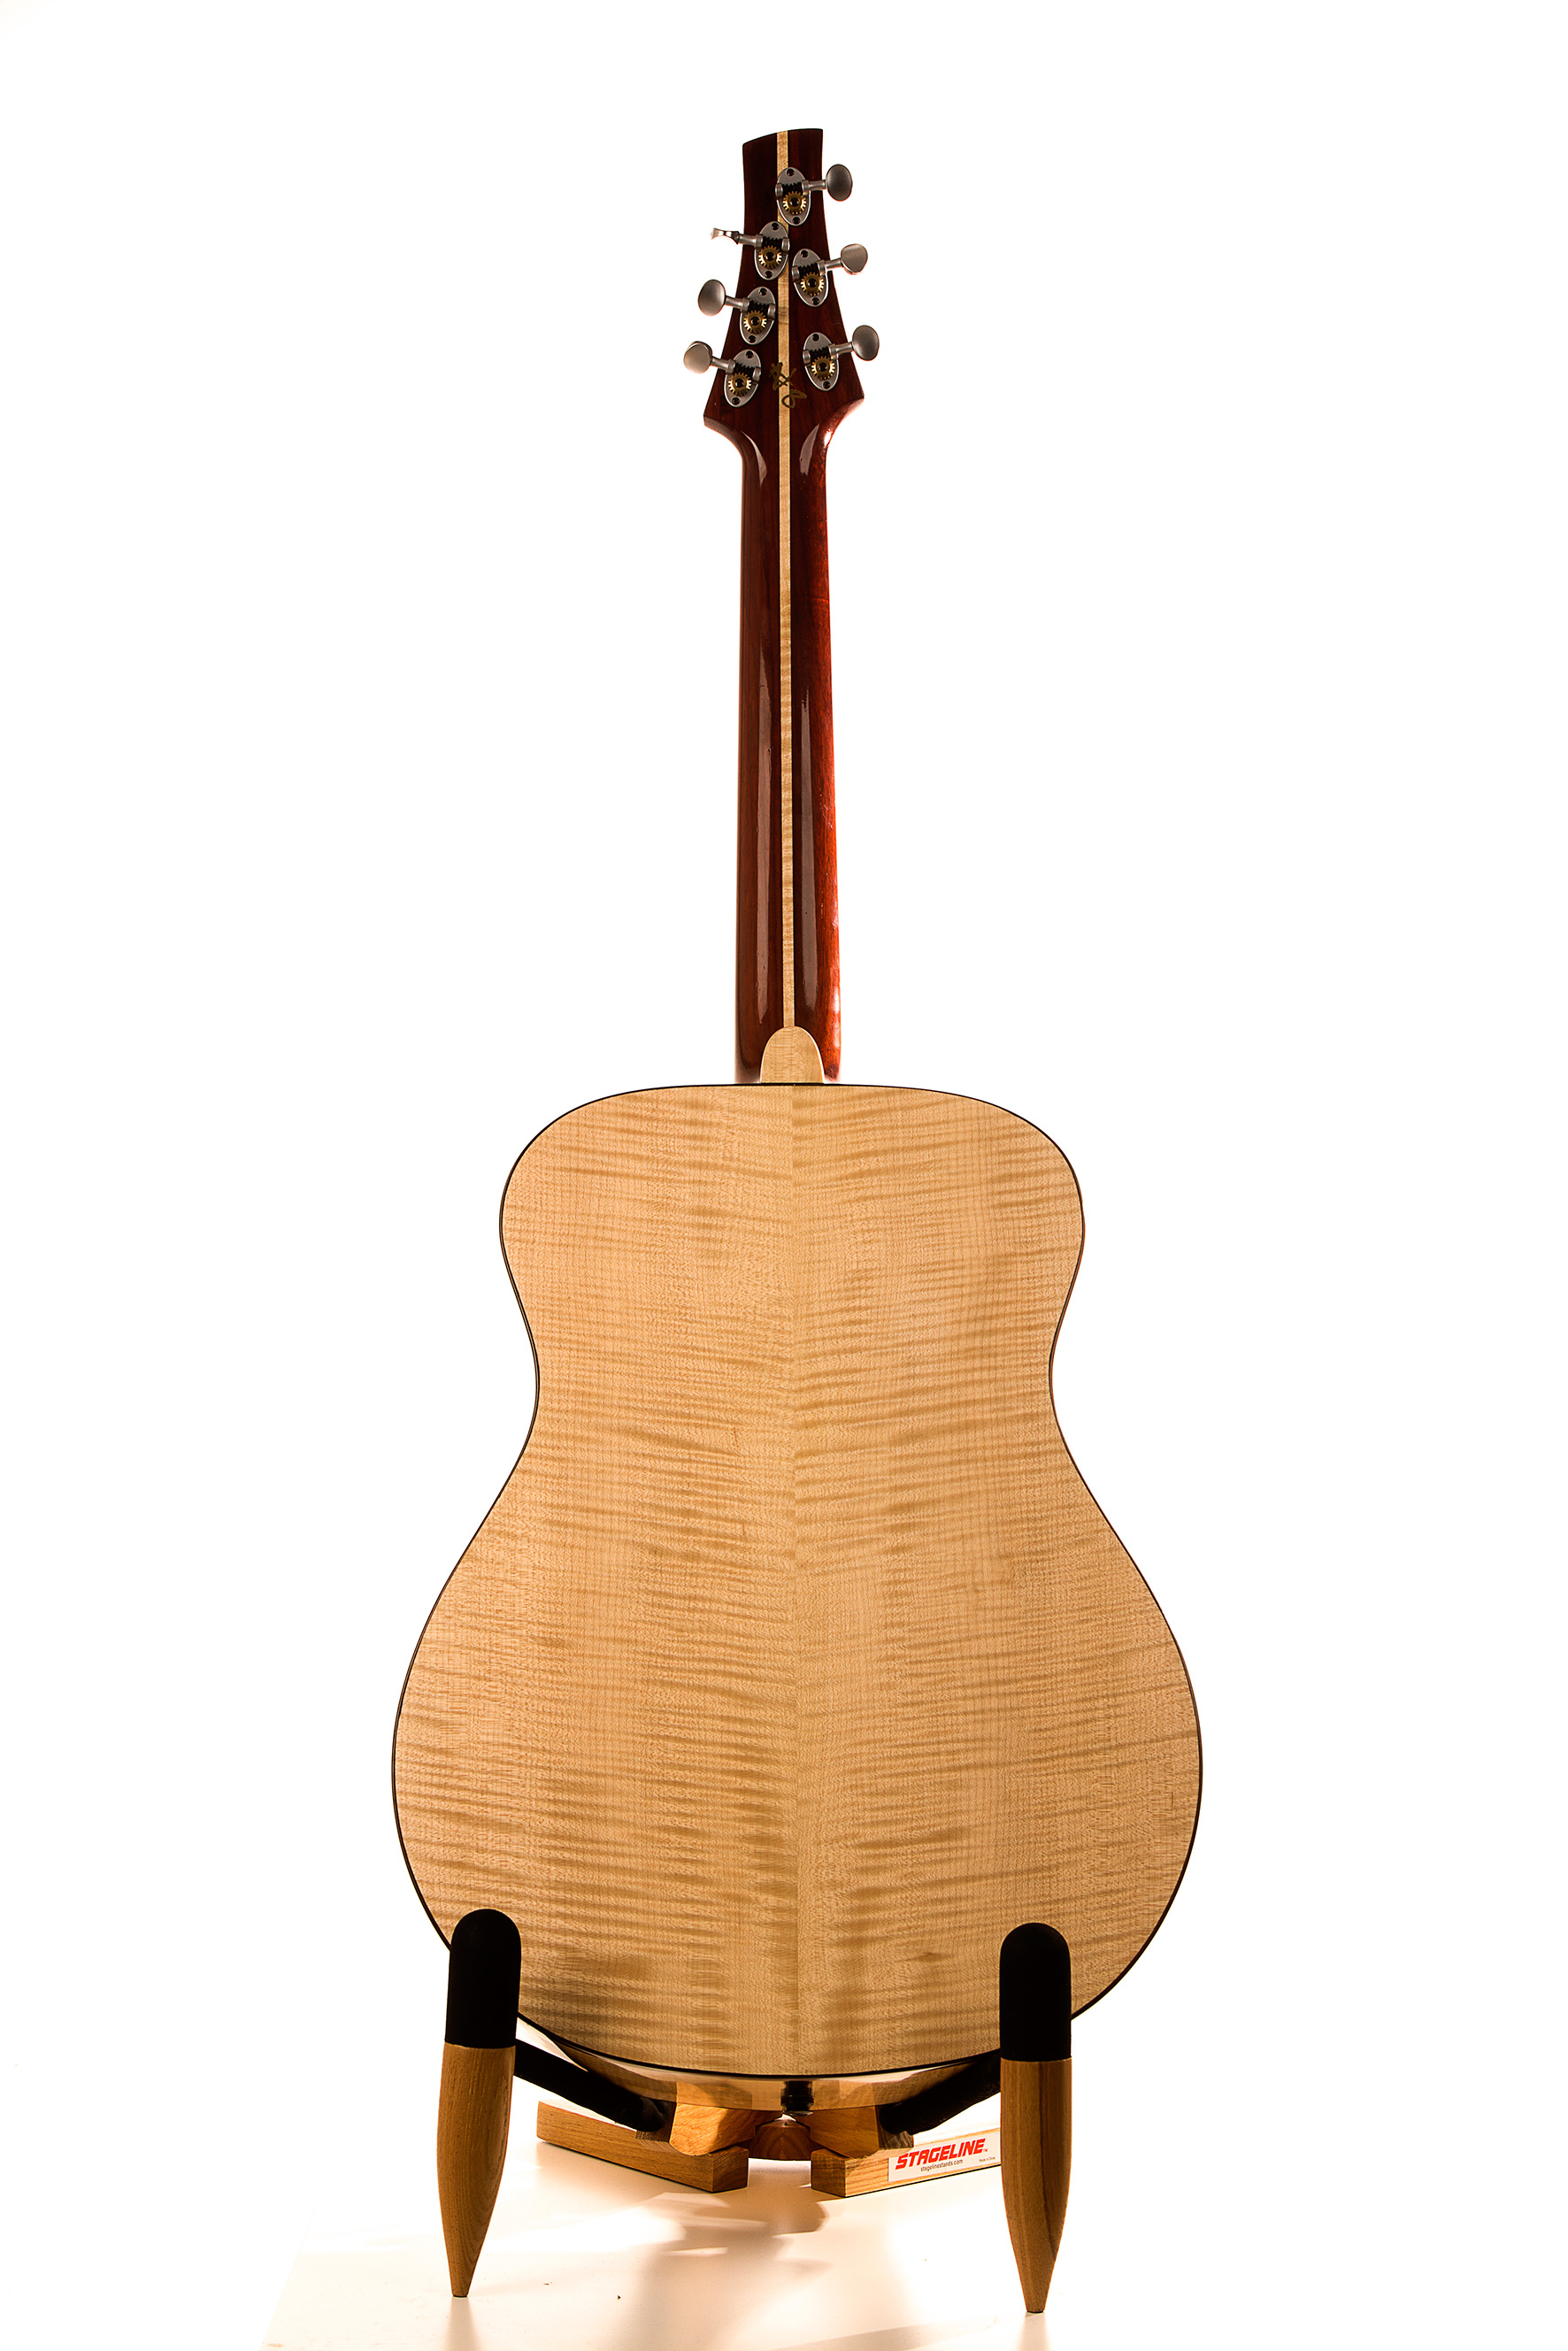 Pusiol_Maple-Syrup guitar